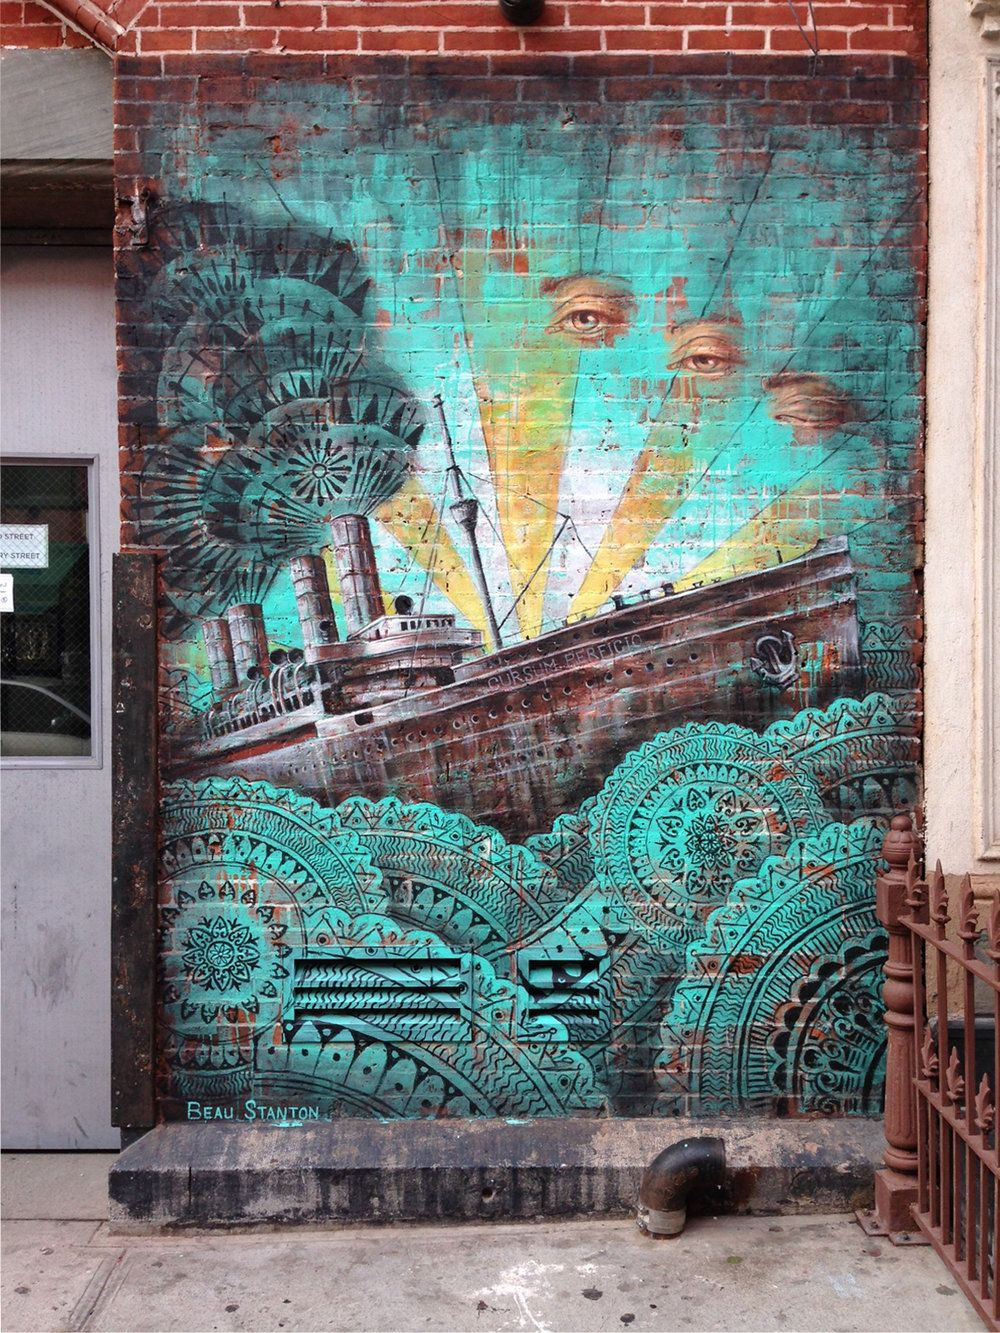 Beau Stanton Murallist Helps Interior Designers Property Owners And Offices Source Discover Commission Custom Murals From New York Citys Most